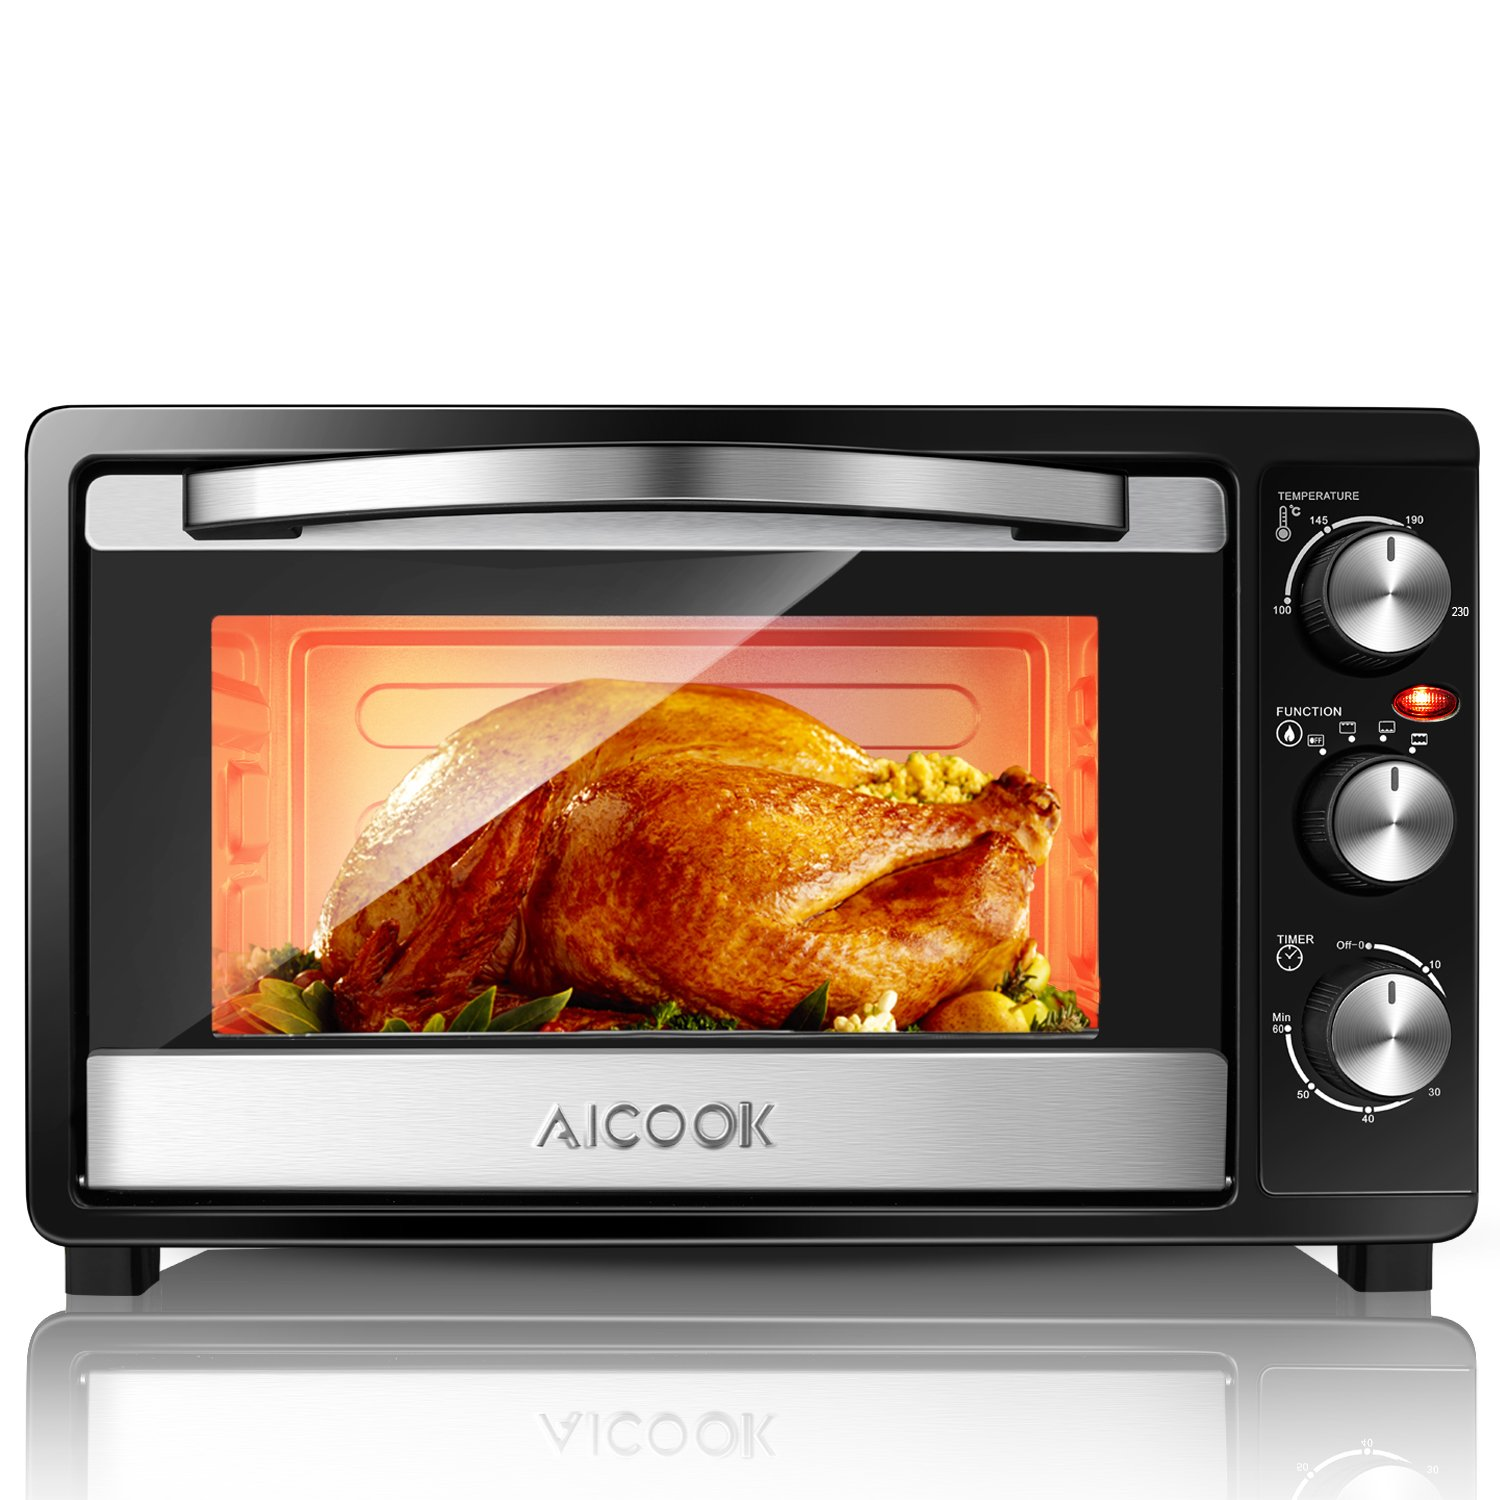 Aicook Mini Oven 23L Electric Grill with Temperature Setting 100-230℃ and 60 Mins Timer, 1500W Double Glazed Door Toaster Oven, 3 Baking Functions,Easy to Clean